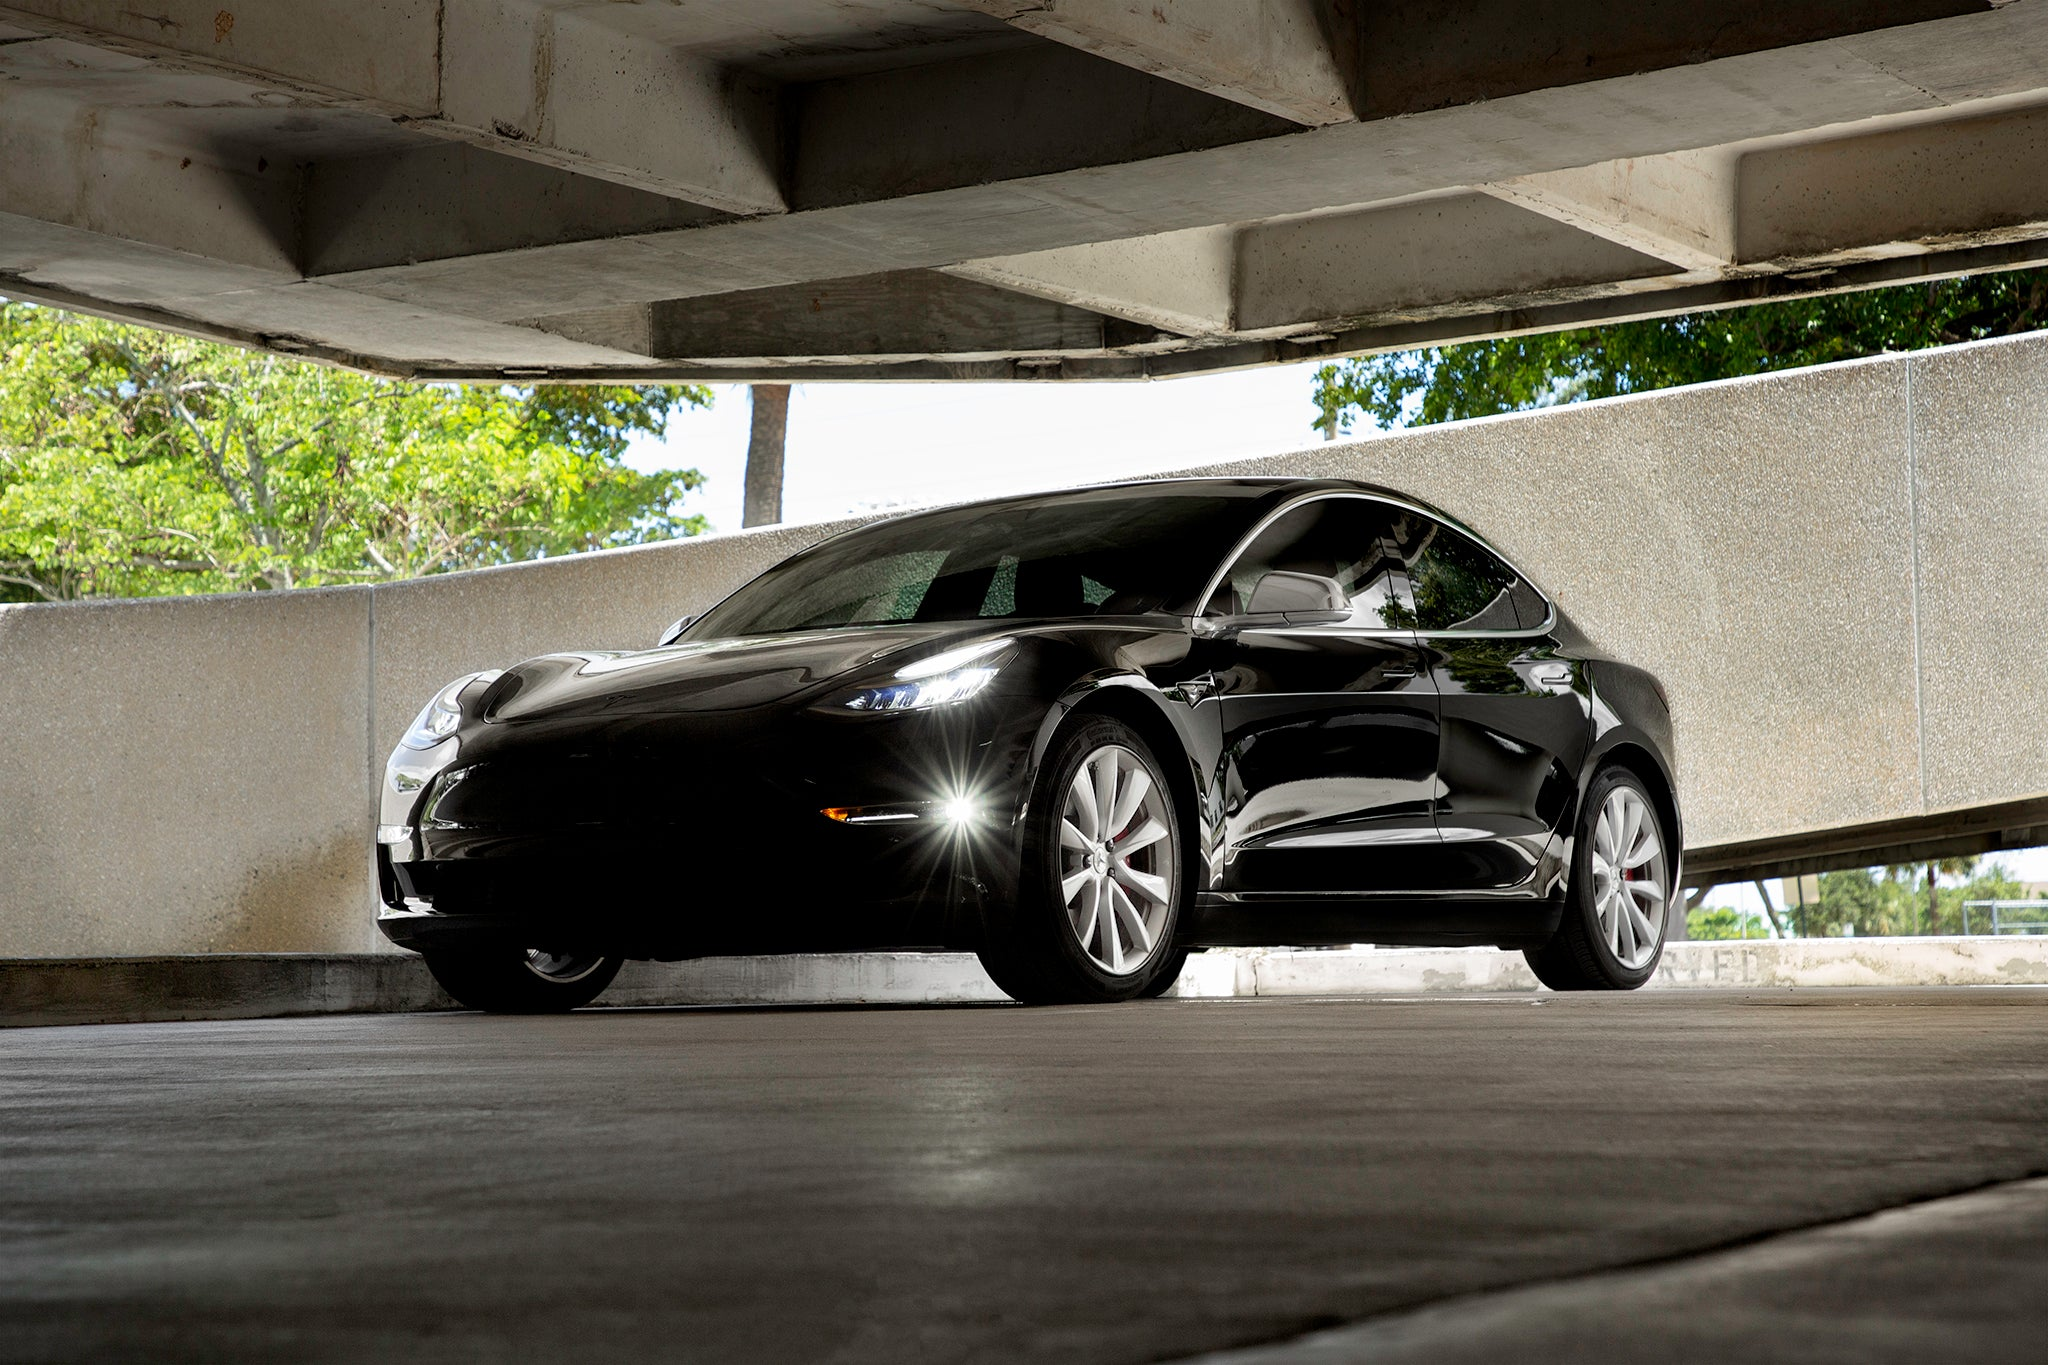 The Cool Factor: How Tesla changed the public's perception